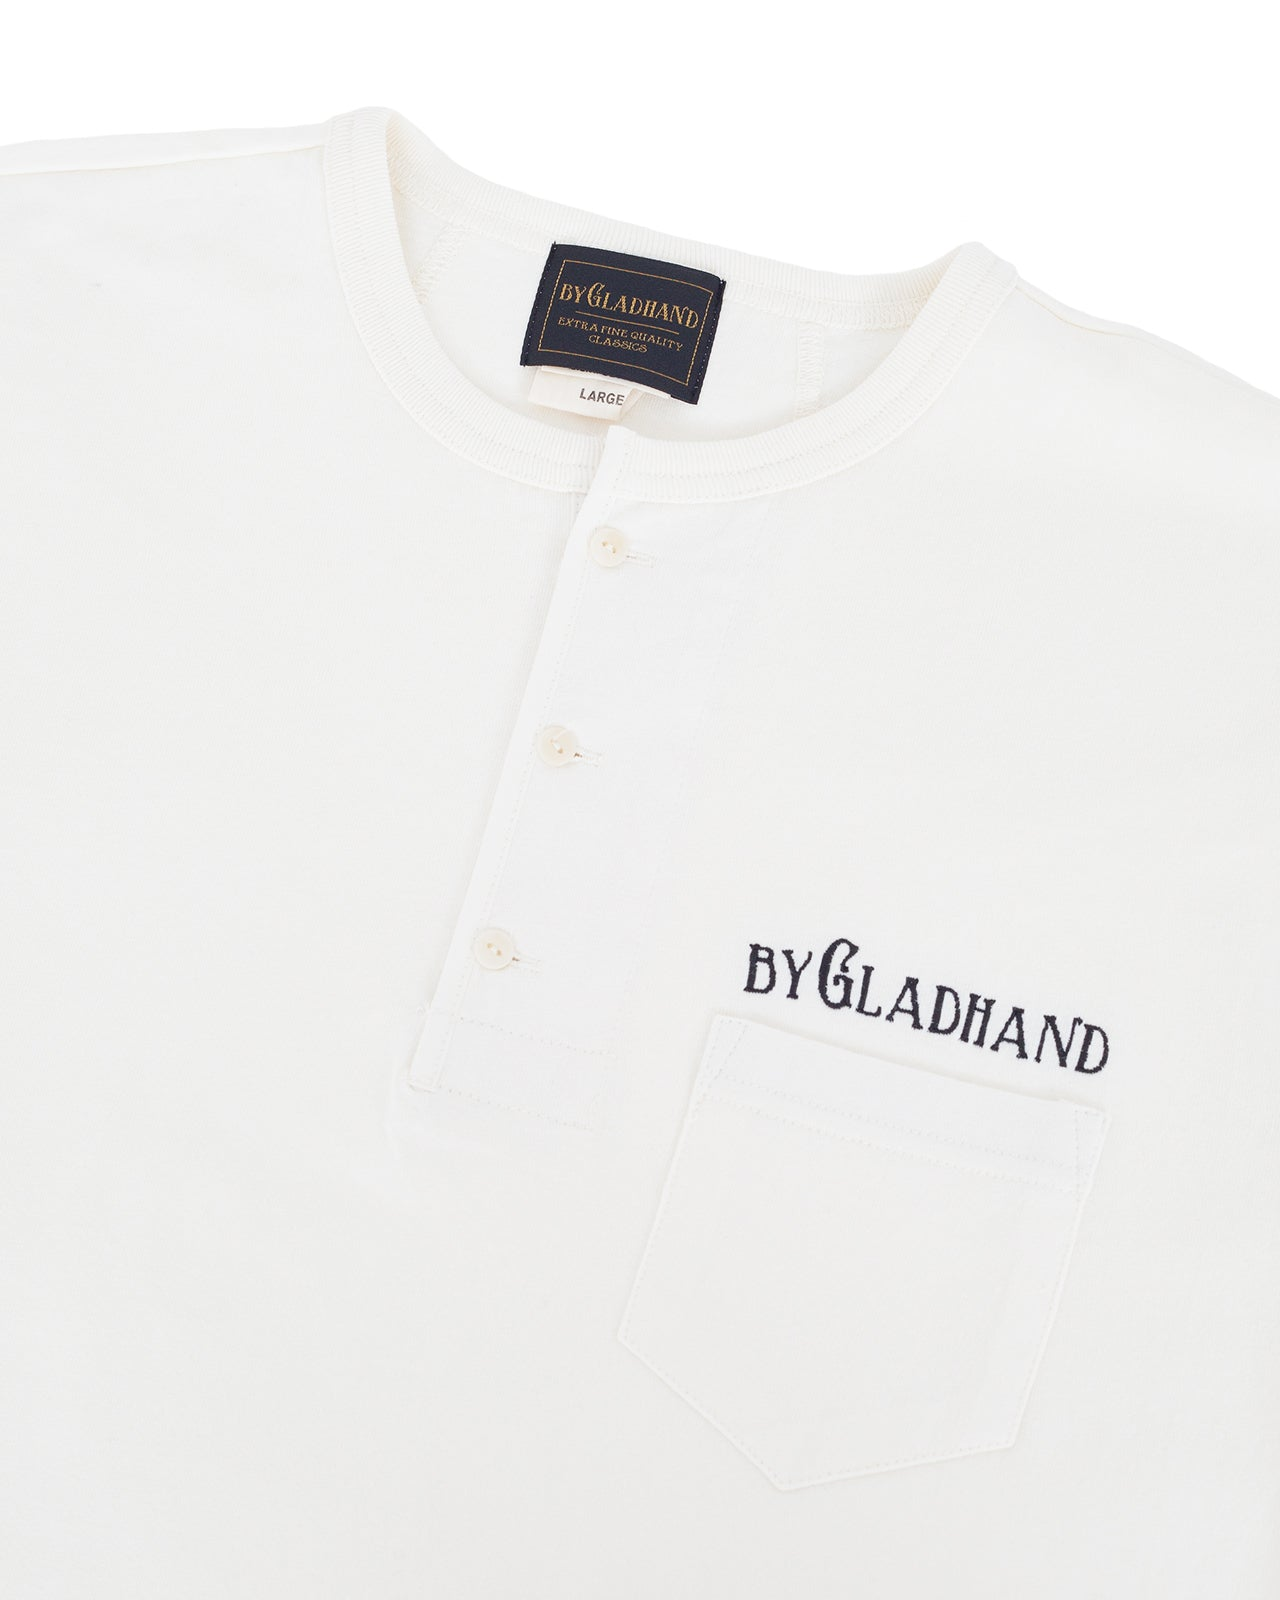 By Glad Hand, Trademark Henley Shirt, White